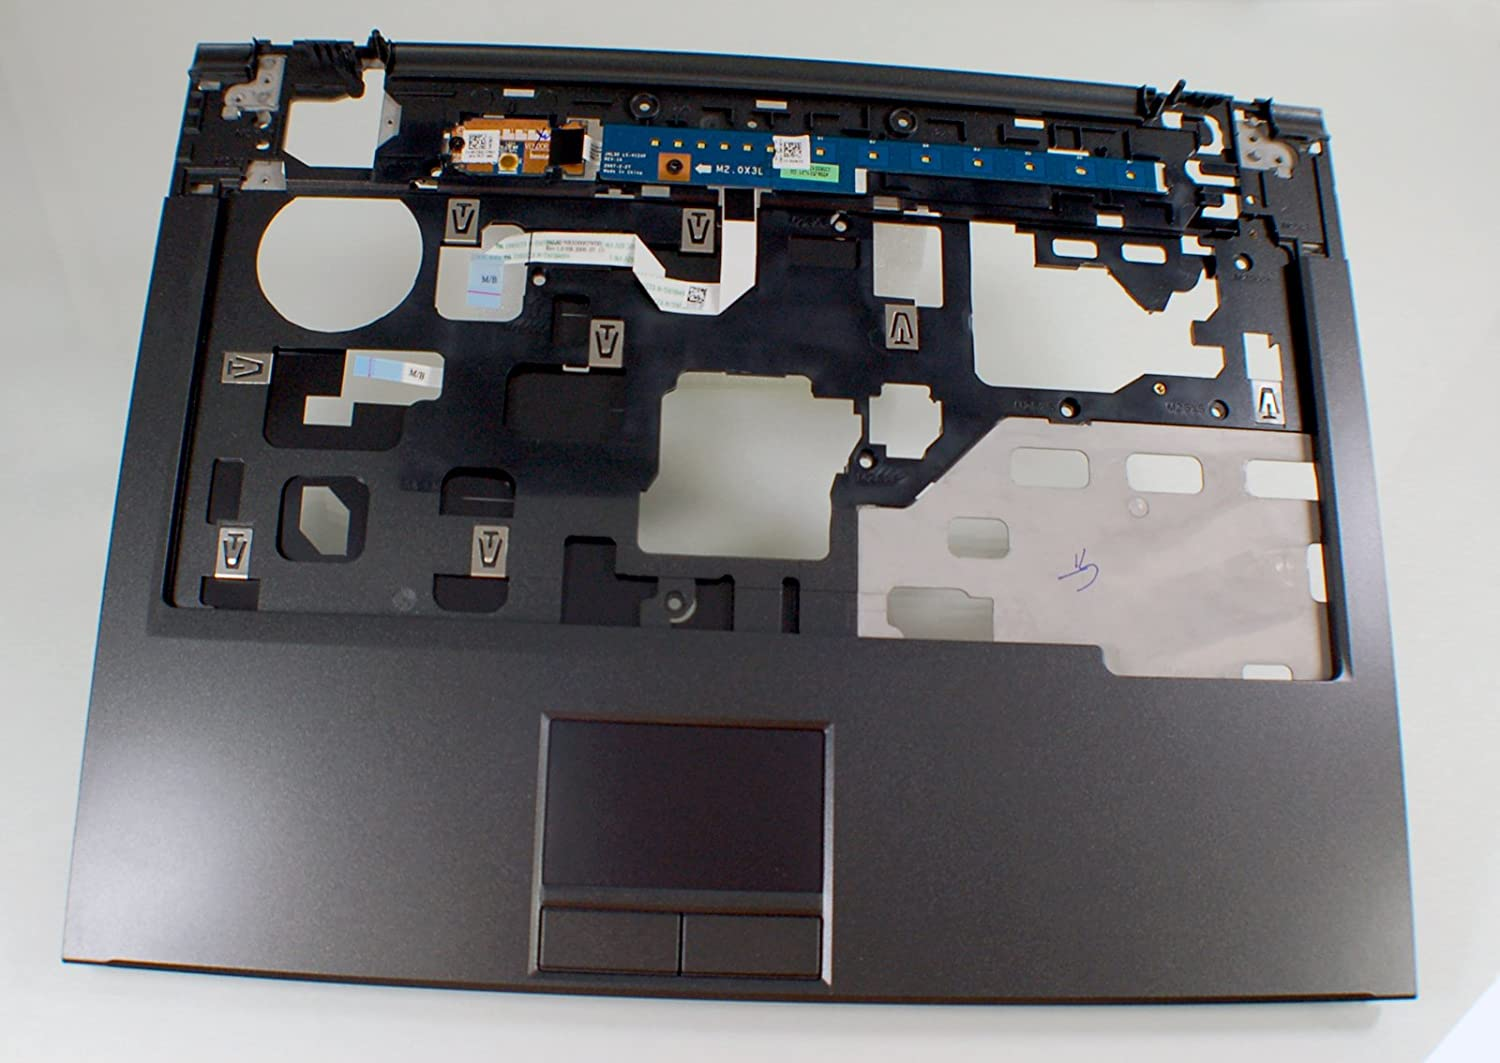 NEW Genuine OEM DELL Vostro 1310 1320 Laptop Palmrest Keyboard Bezel Touchpad Mouse Button Trackpad Trak Pad Single Click H413C